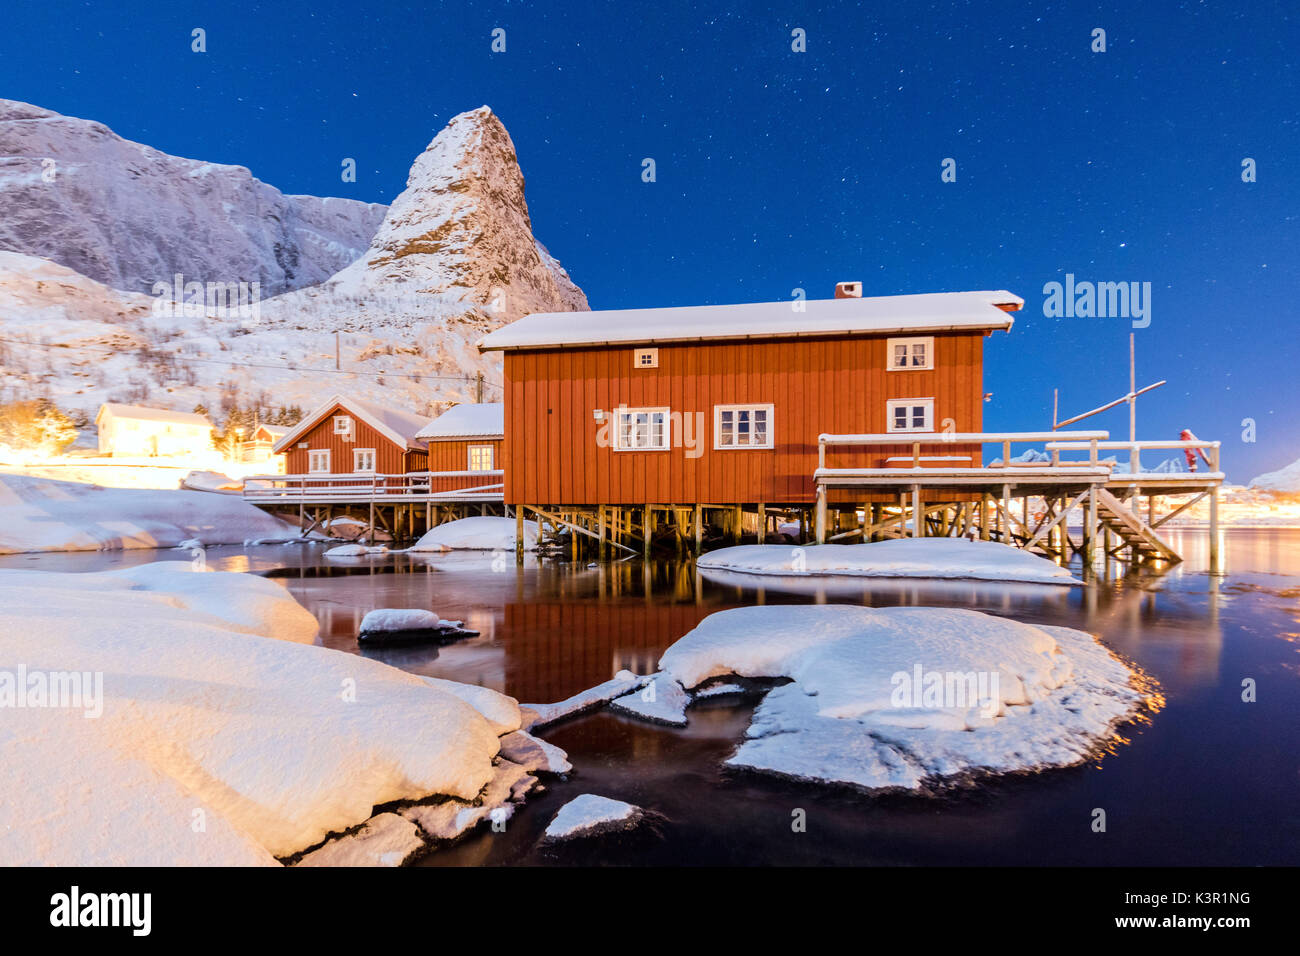 Starry night on the snowy peaks surrounded by the frozen sea and fishermen houses Reinevagen Bay Lofoten Islands Norway Europe - Stock Image